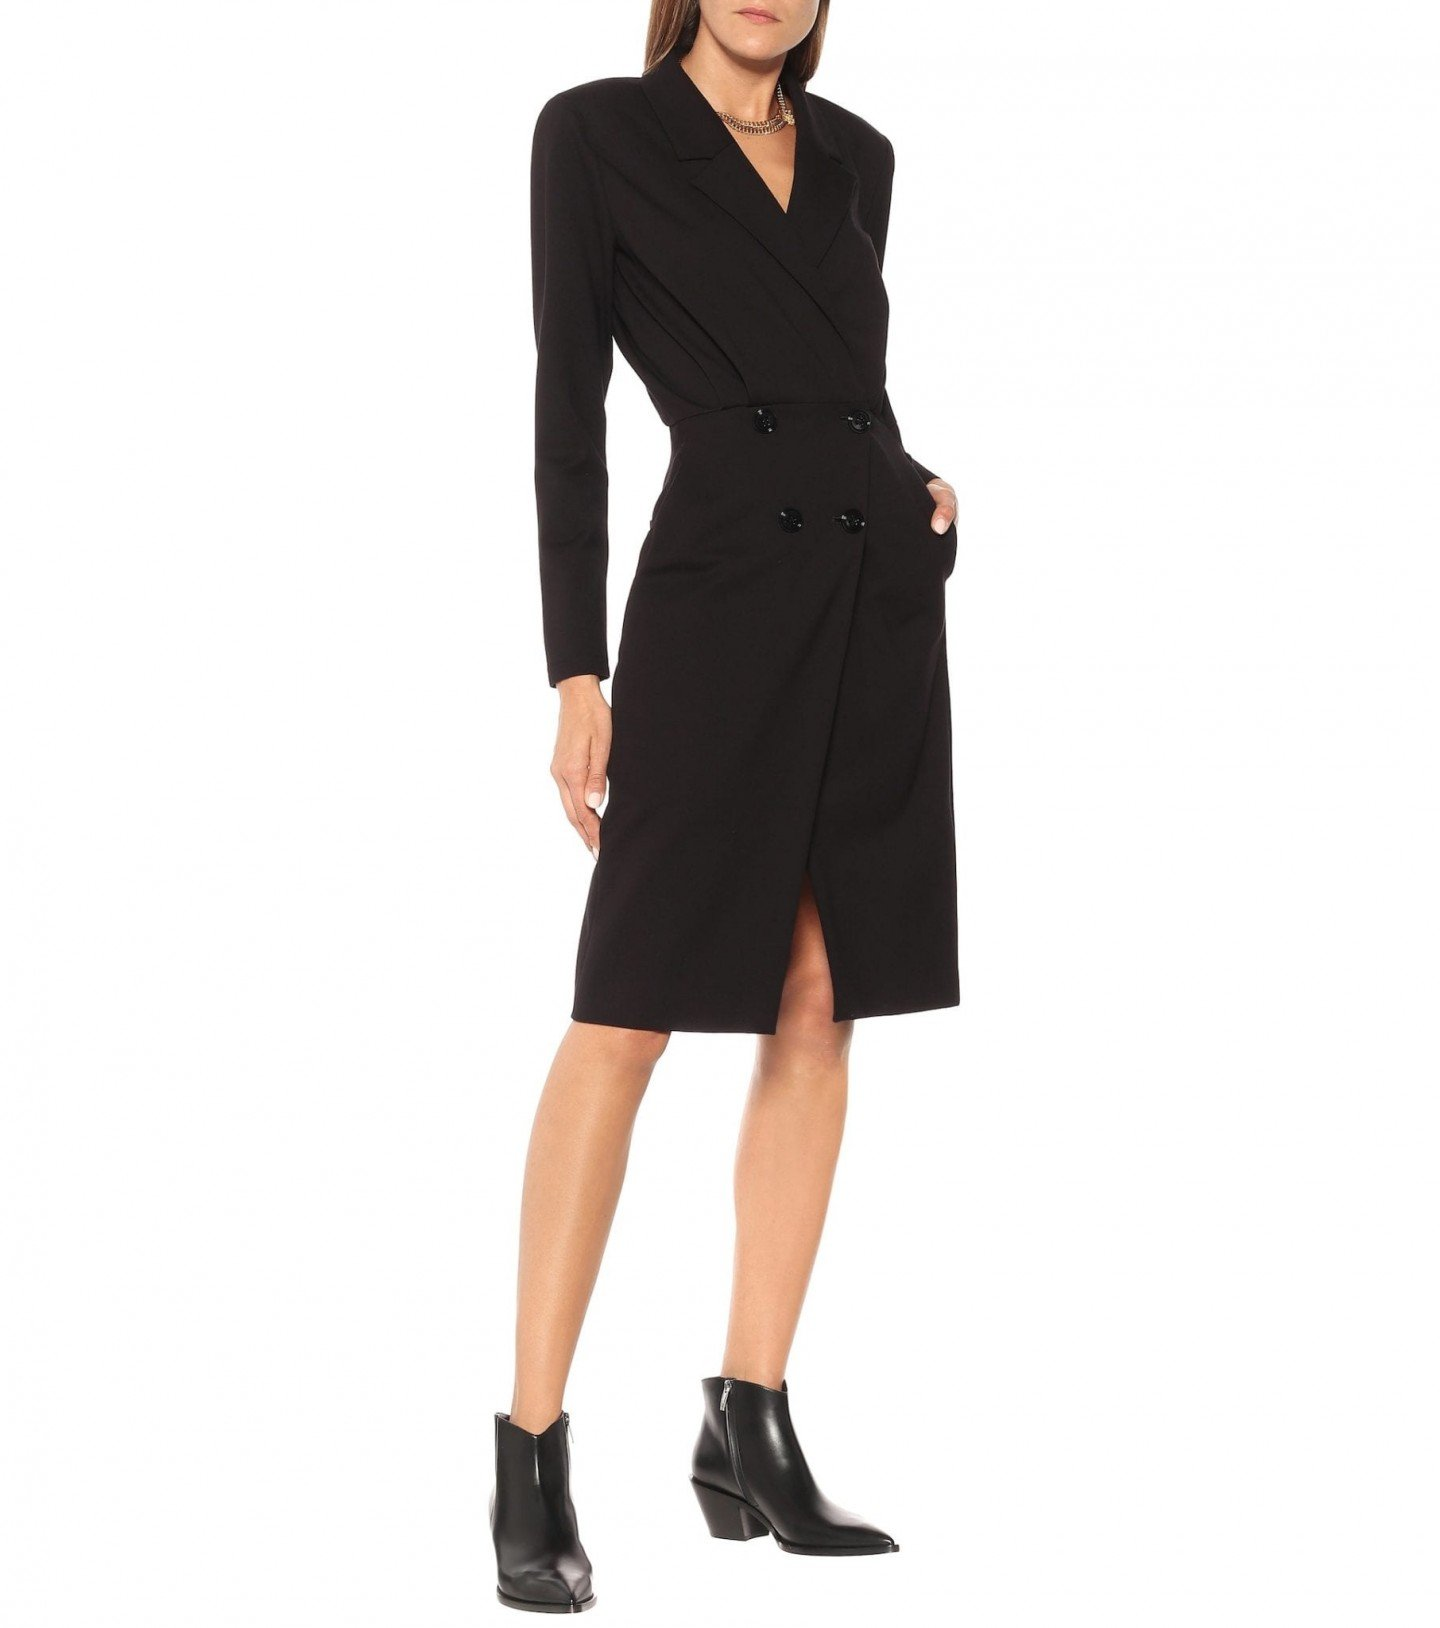 DOROTHEE SCHUMACHER Emotional Essence Mini Dress